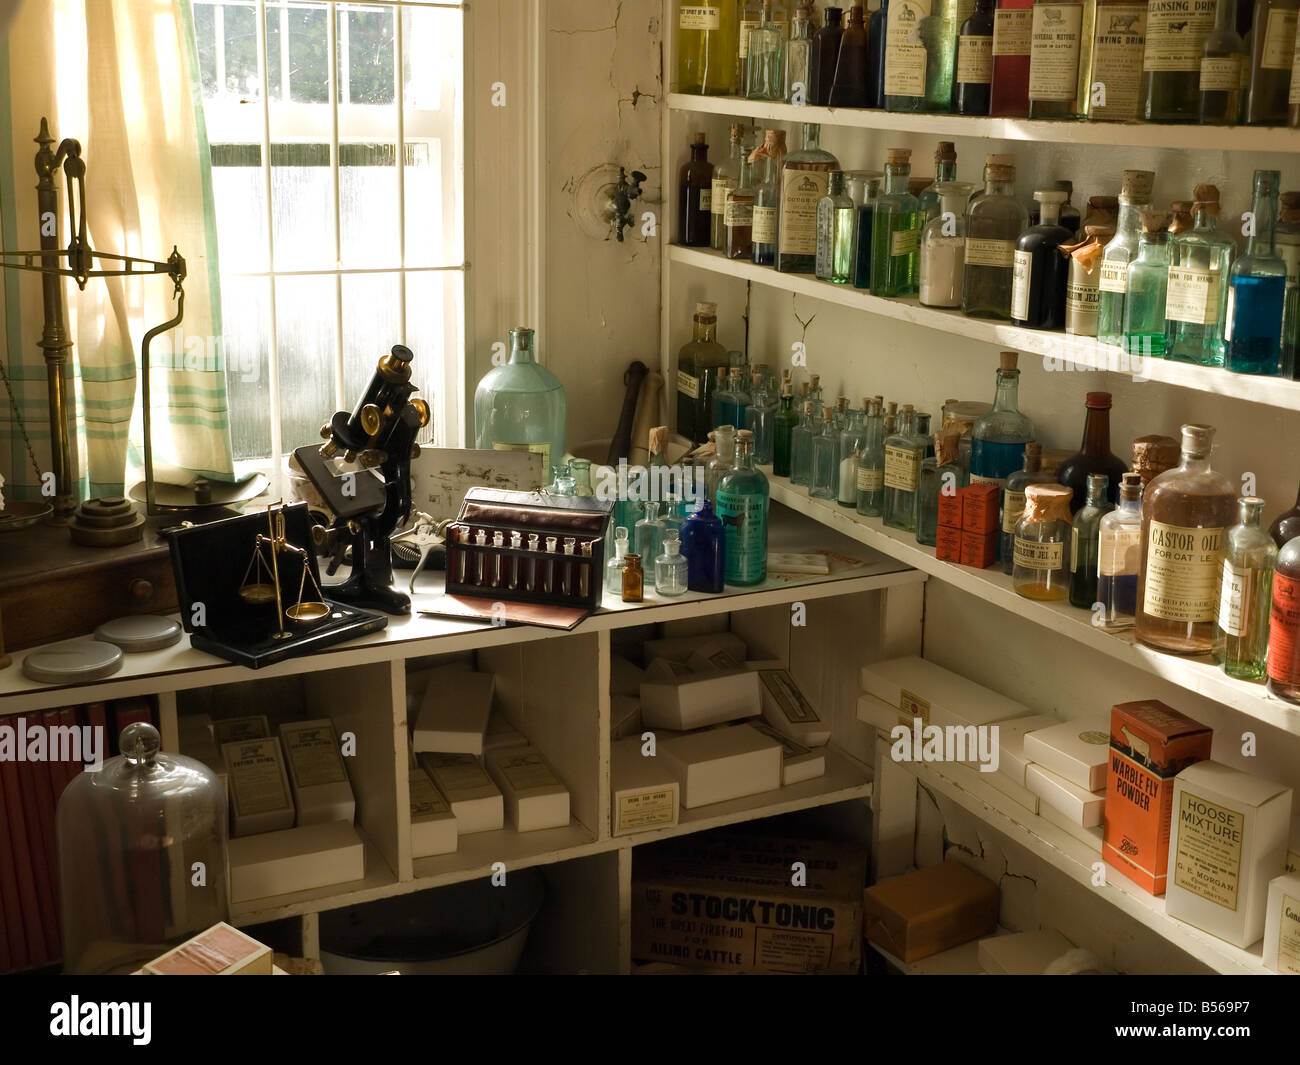 Display in the James Herriot museum showing the dispensary of the fictional veterinary practice in the early 1950s - Stock Image